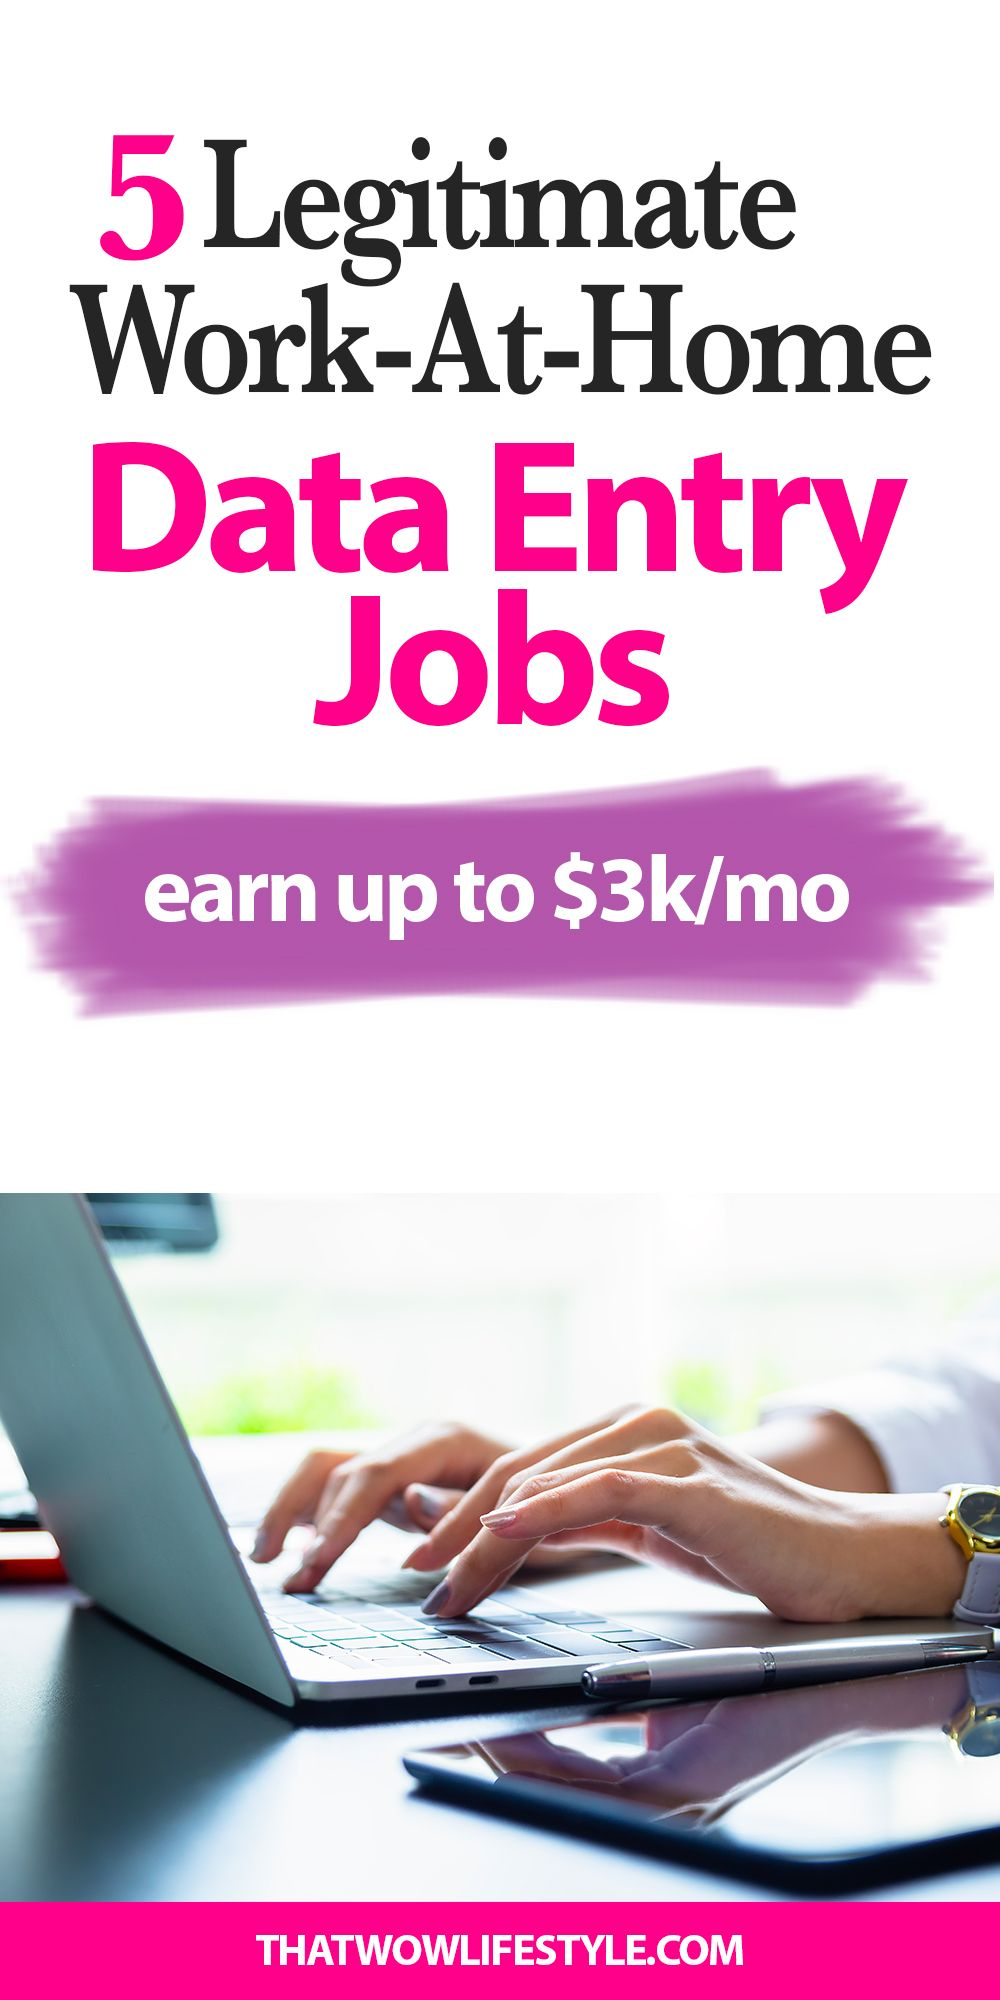 d952f552a037db7521c9a7ff9f81c90b - 5 Legitimate Work At Home Data Entry Jobs - work-from-home